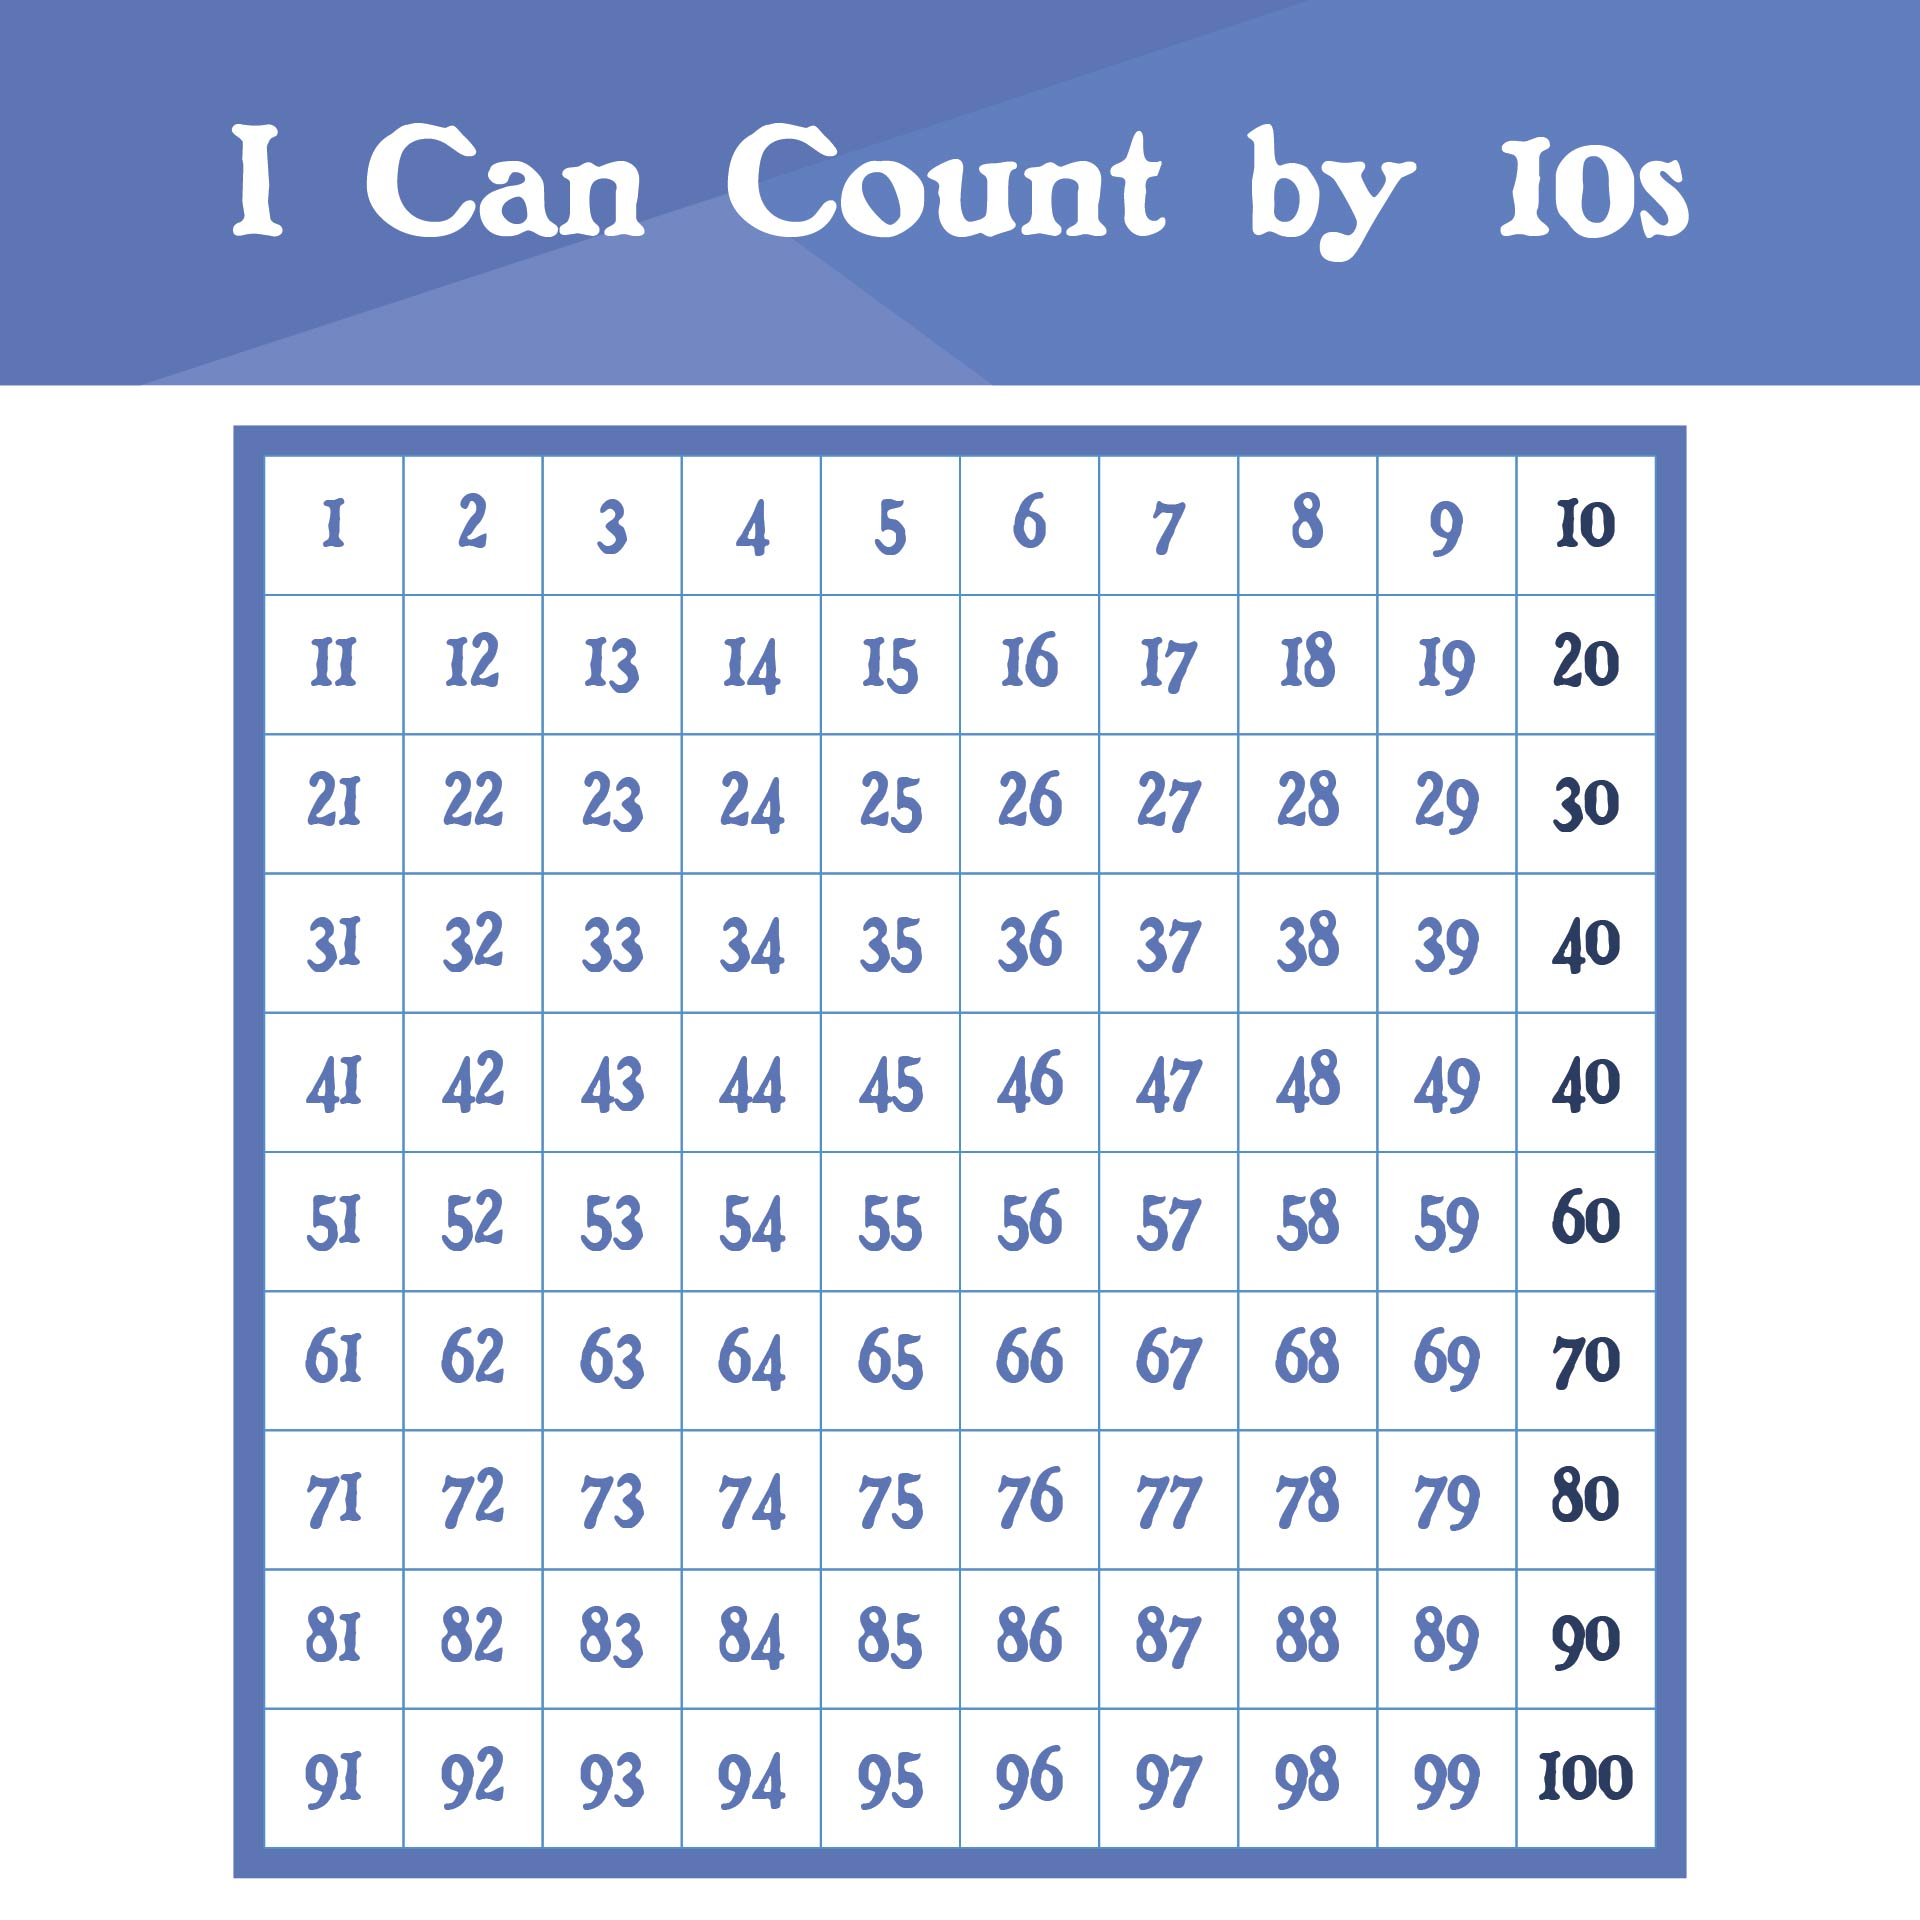 Count Counting By 10s Chart